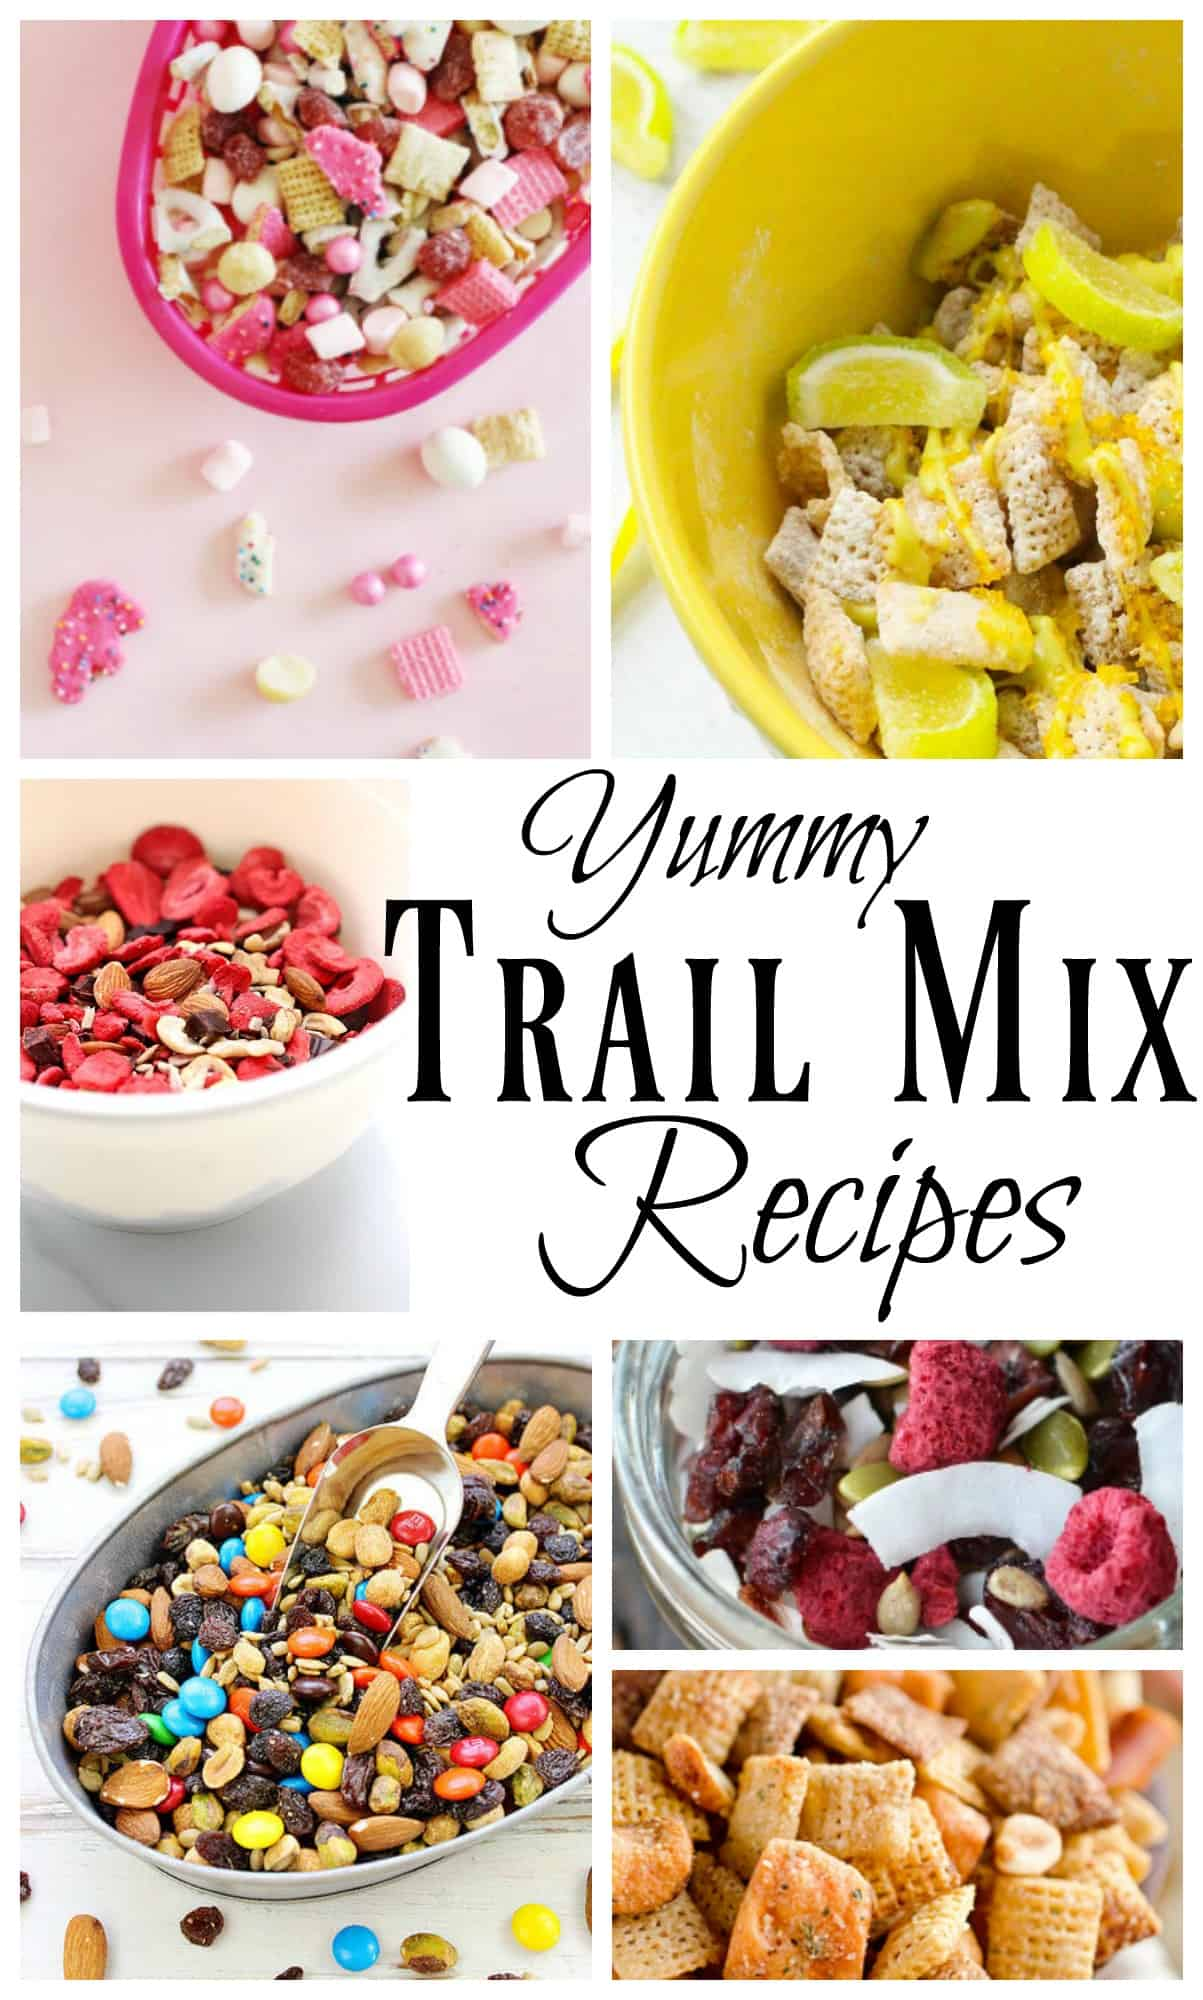 20 Yummy Trail Mix Recipes